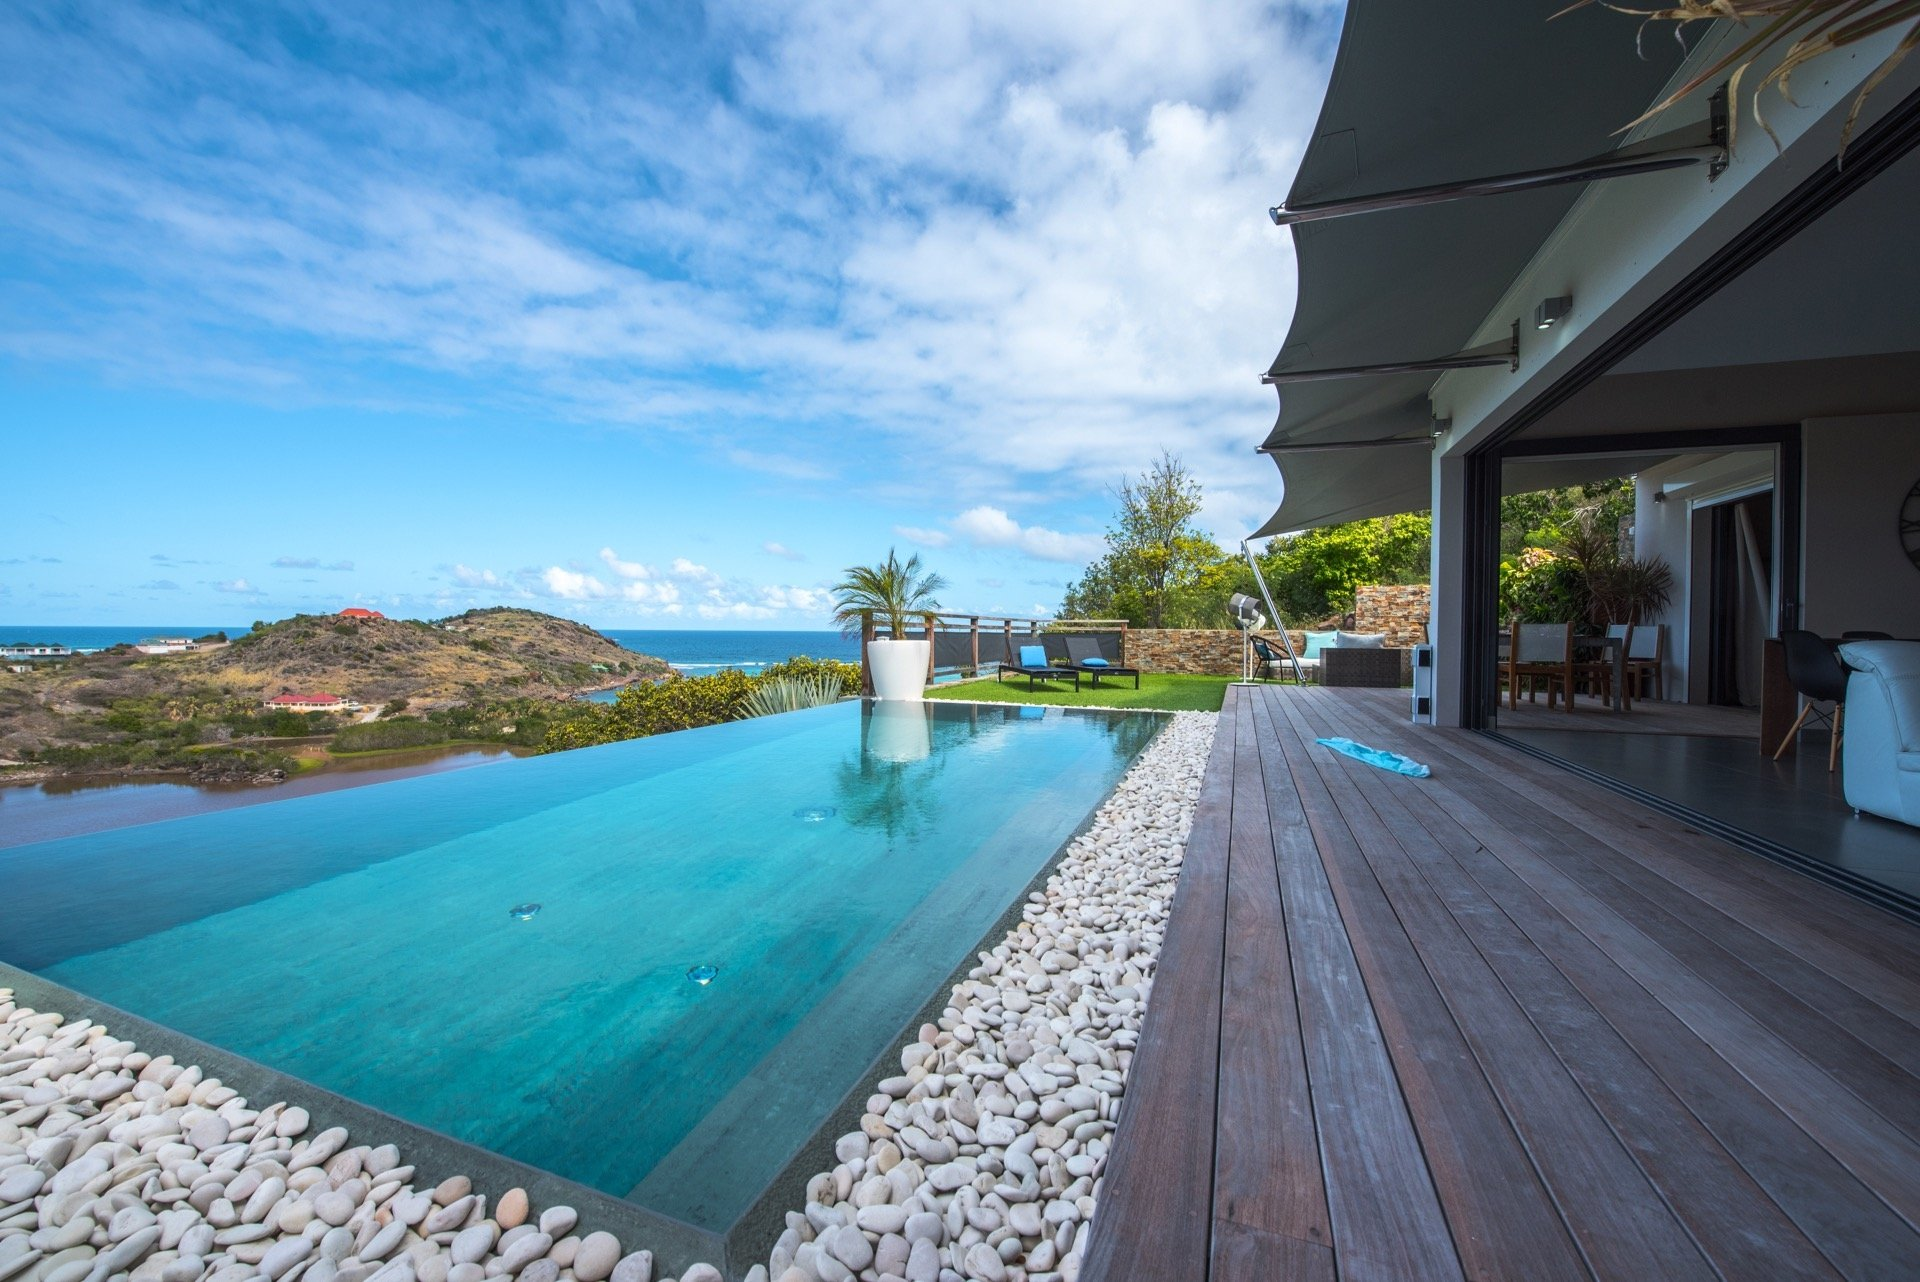 Luxury villa rentals caribbean - St barthelemy - Petit culdesac - No location 4 - Open Space - Image 1/27